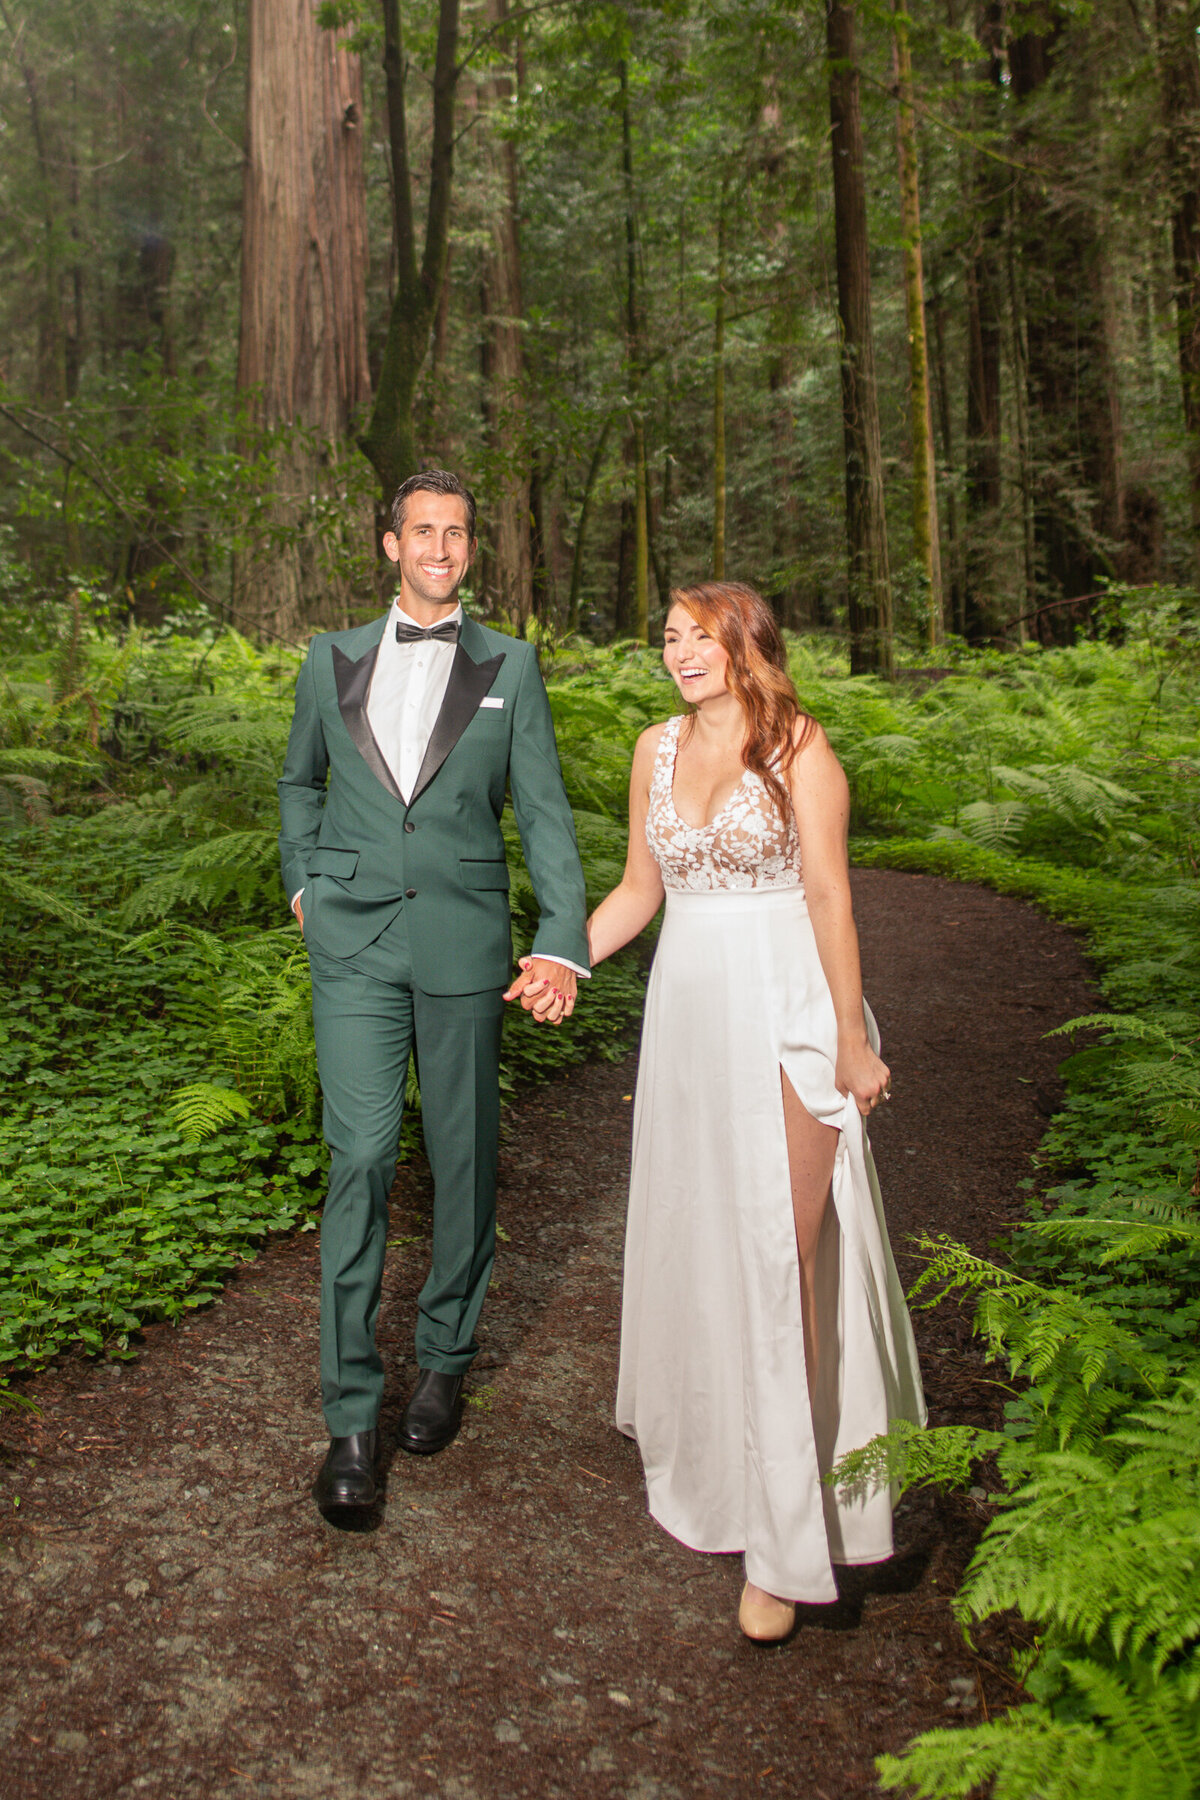 Avenue-of-the-Giants-Redwood-Forest-Elopement-Humboldt-County-Elopement-Photographer-Parky's Pics-7